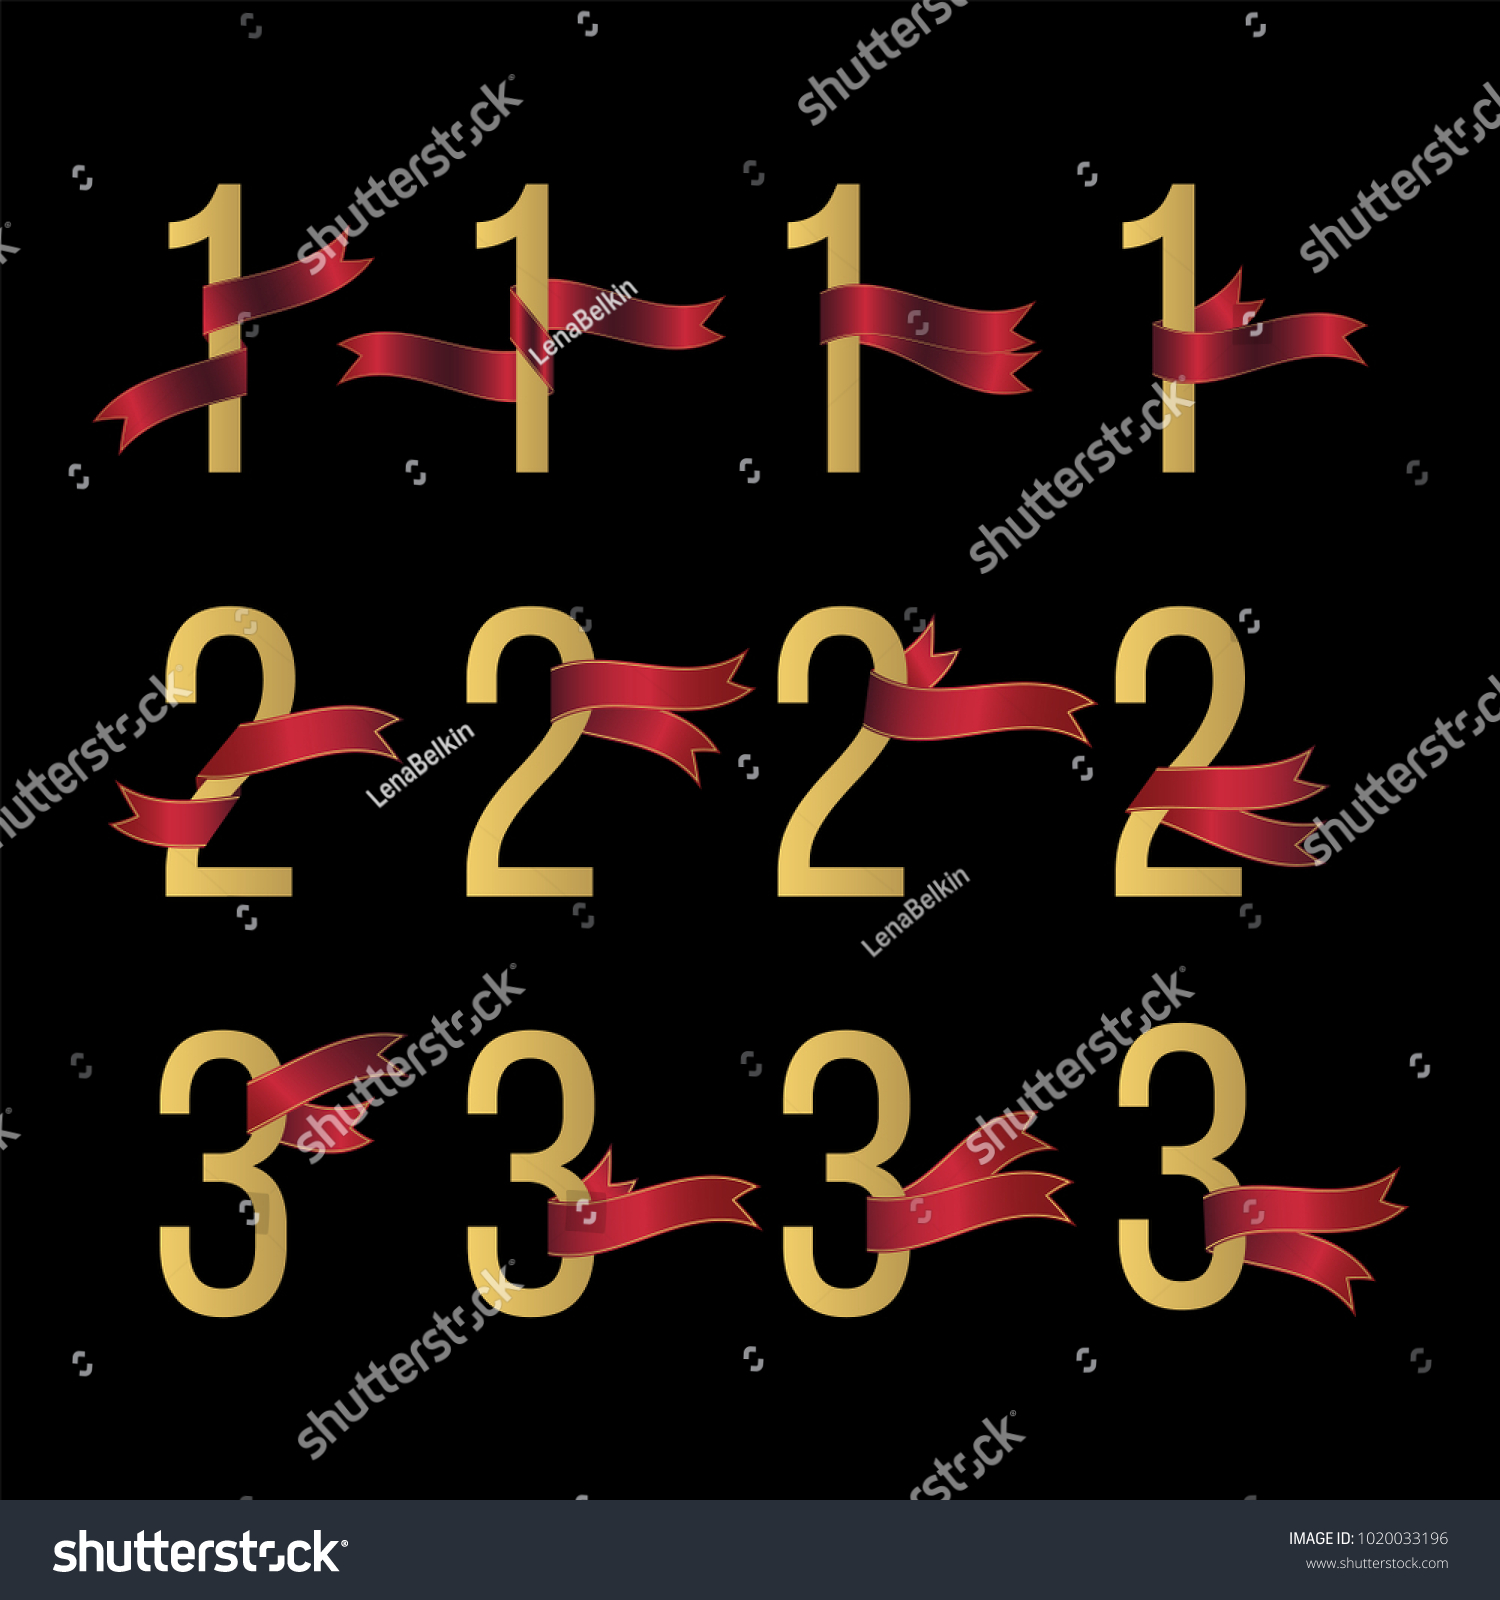 Symbol for number 1 image collections symbol and sign ideas set number 1 2 3 symbols stock vector 1020033196 shutterstock set of number 1 2 3 buycottarizona